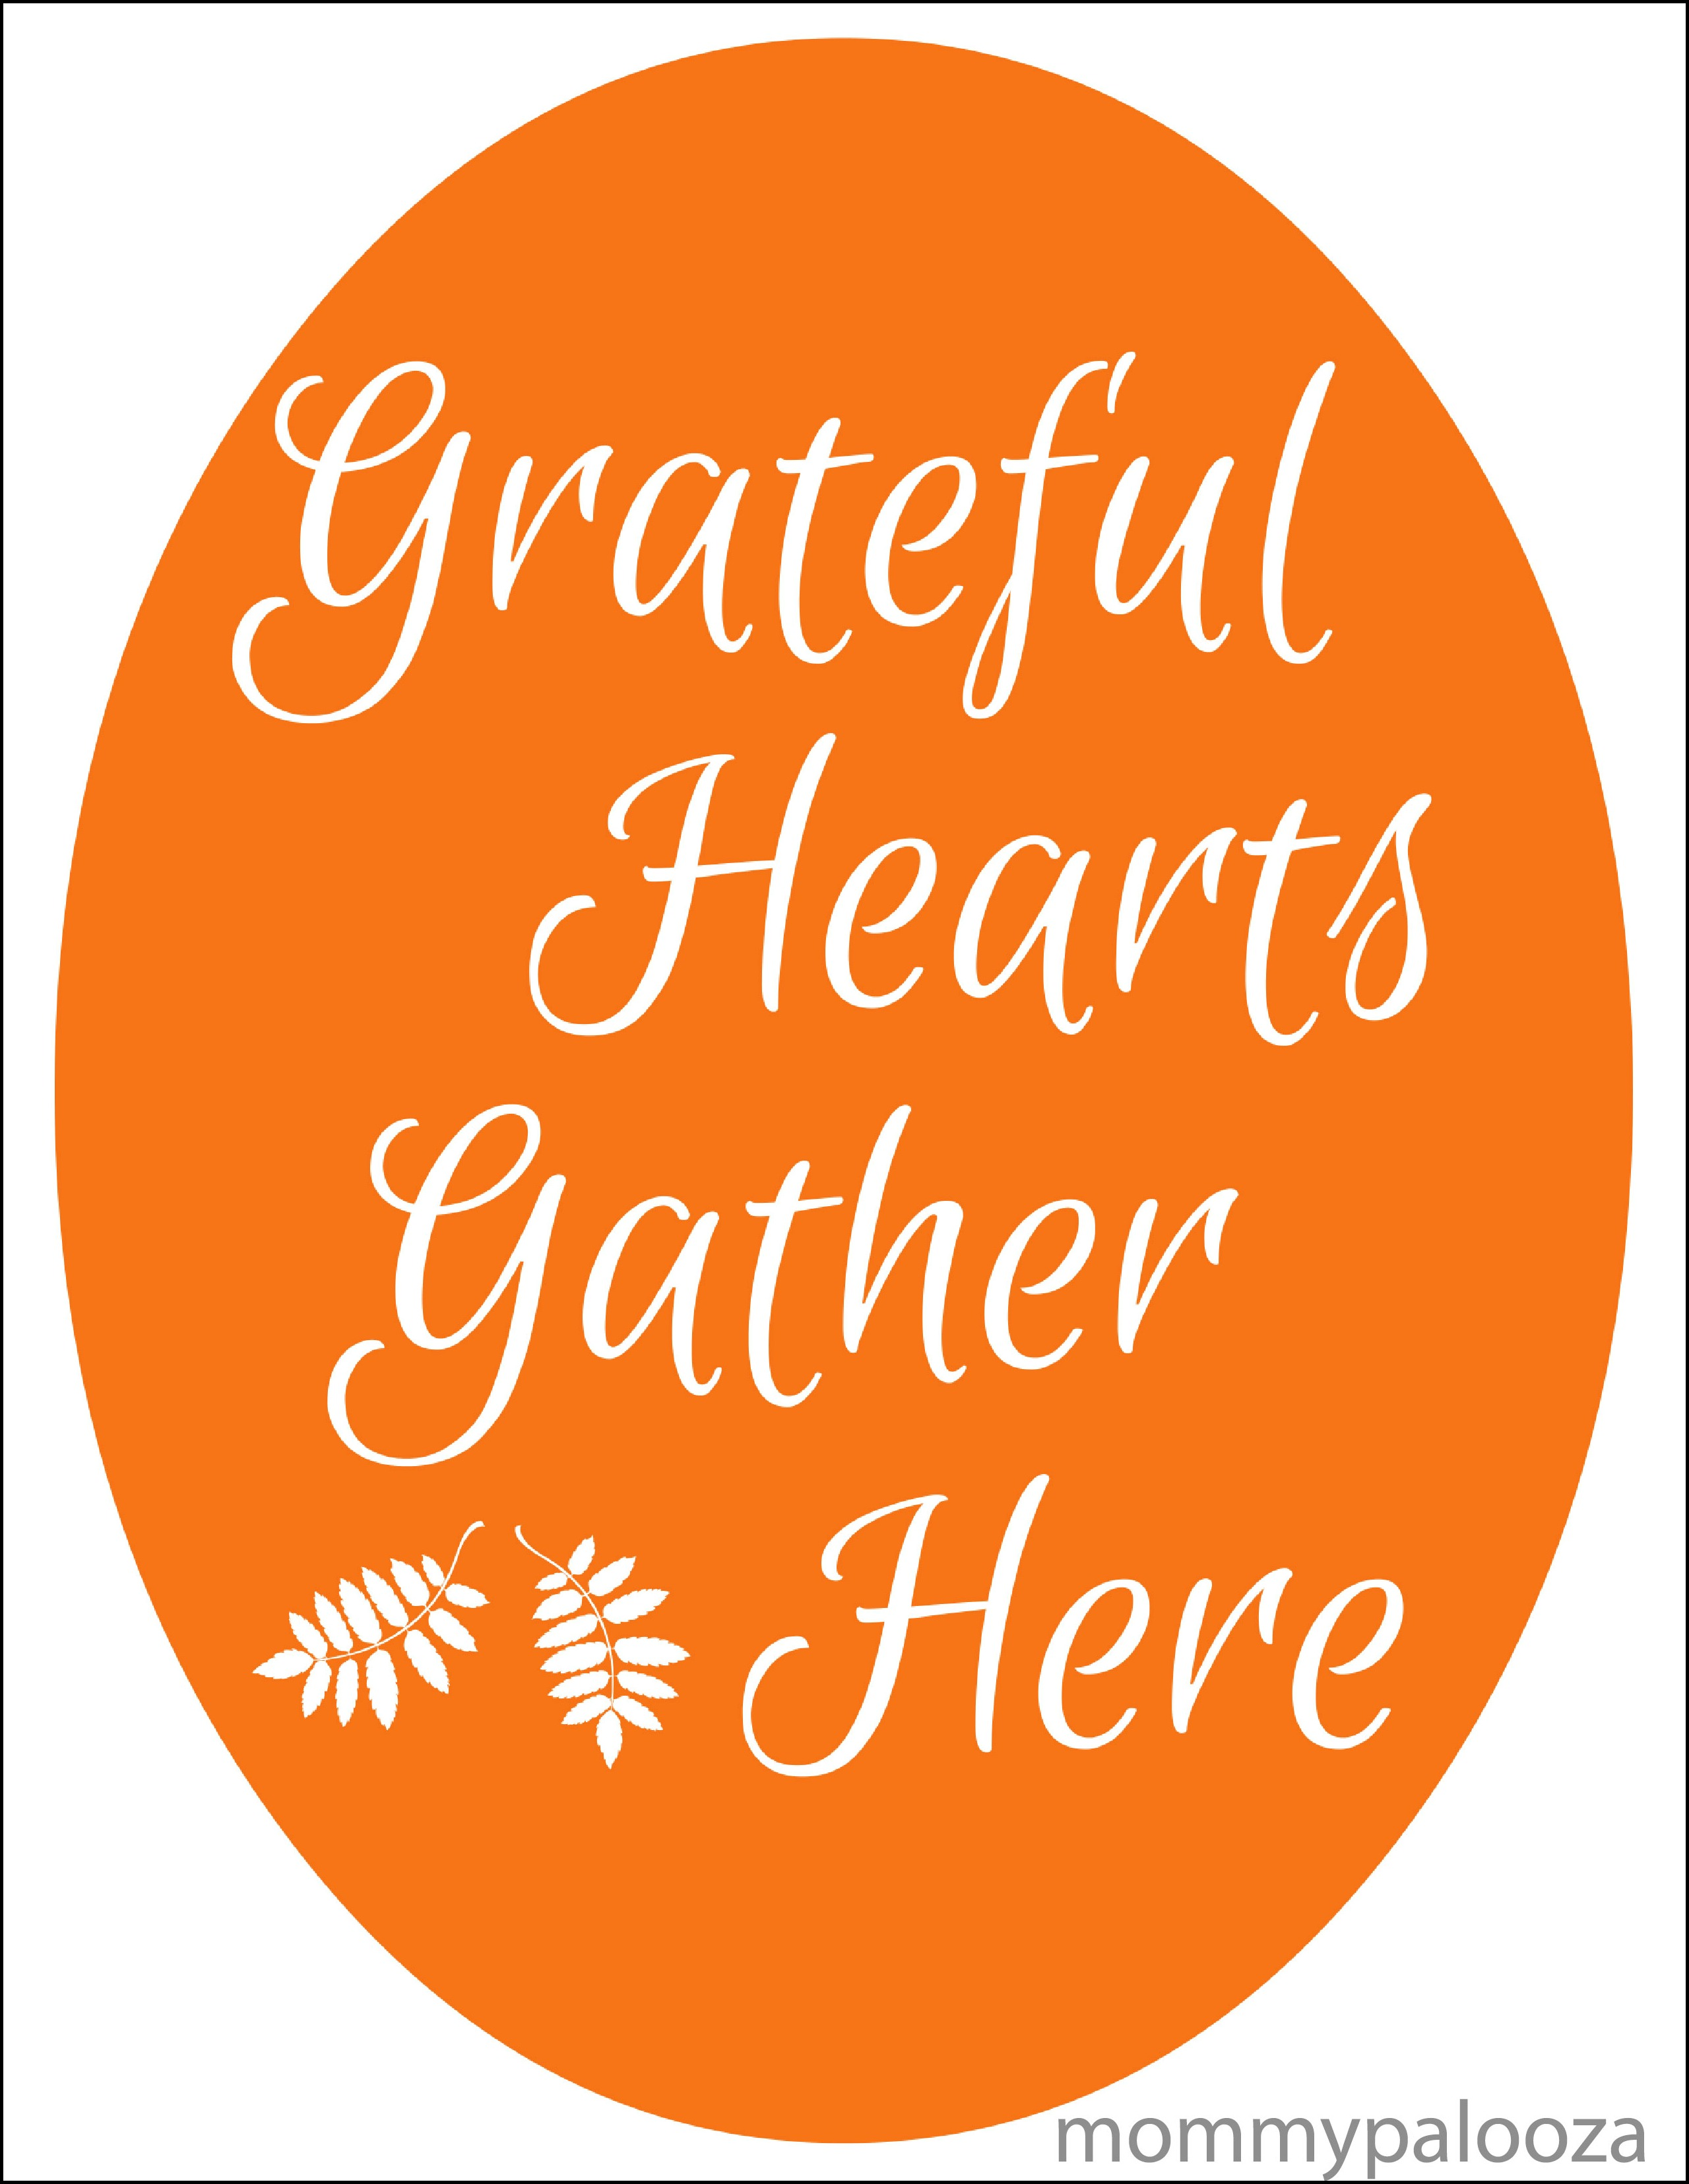 Grateful Hearts Thanksgiving Day Printable Quote | Mommypalooza.com